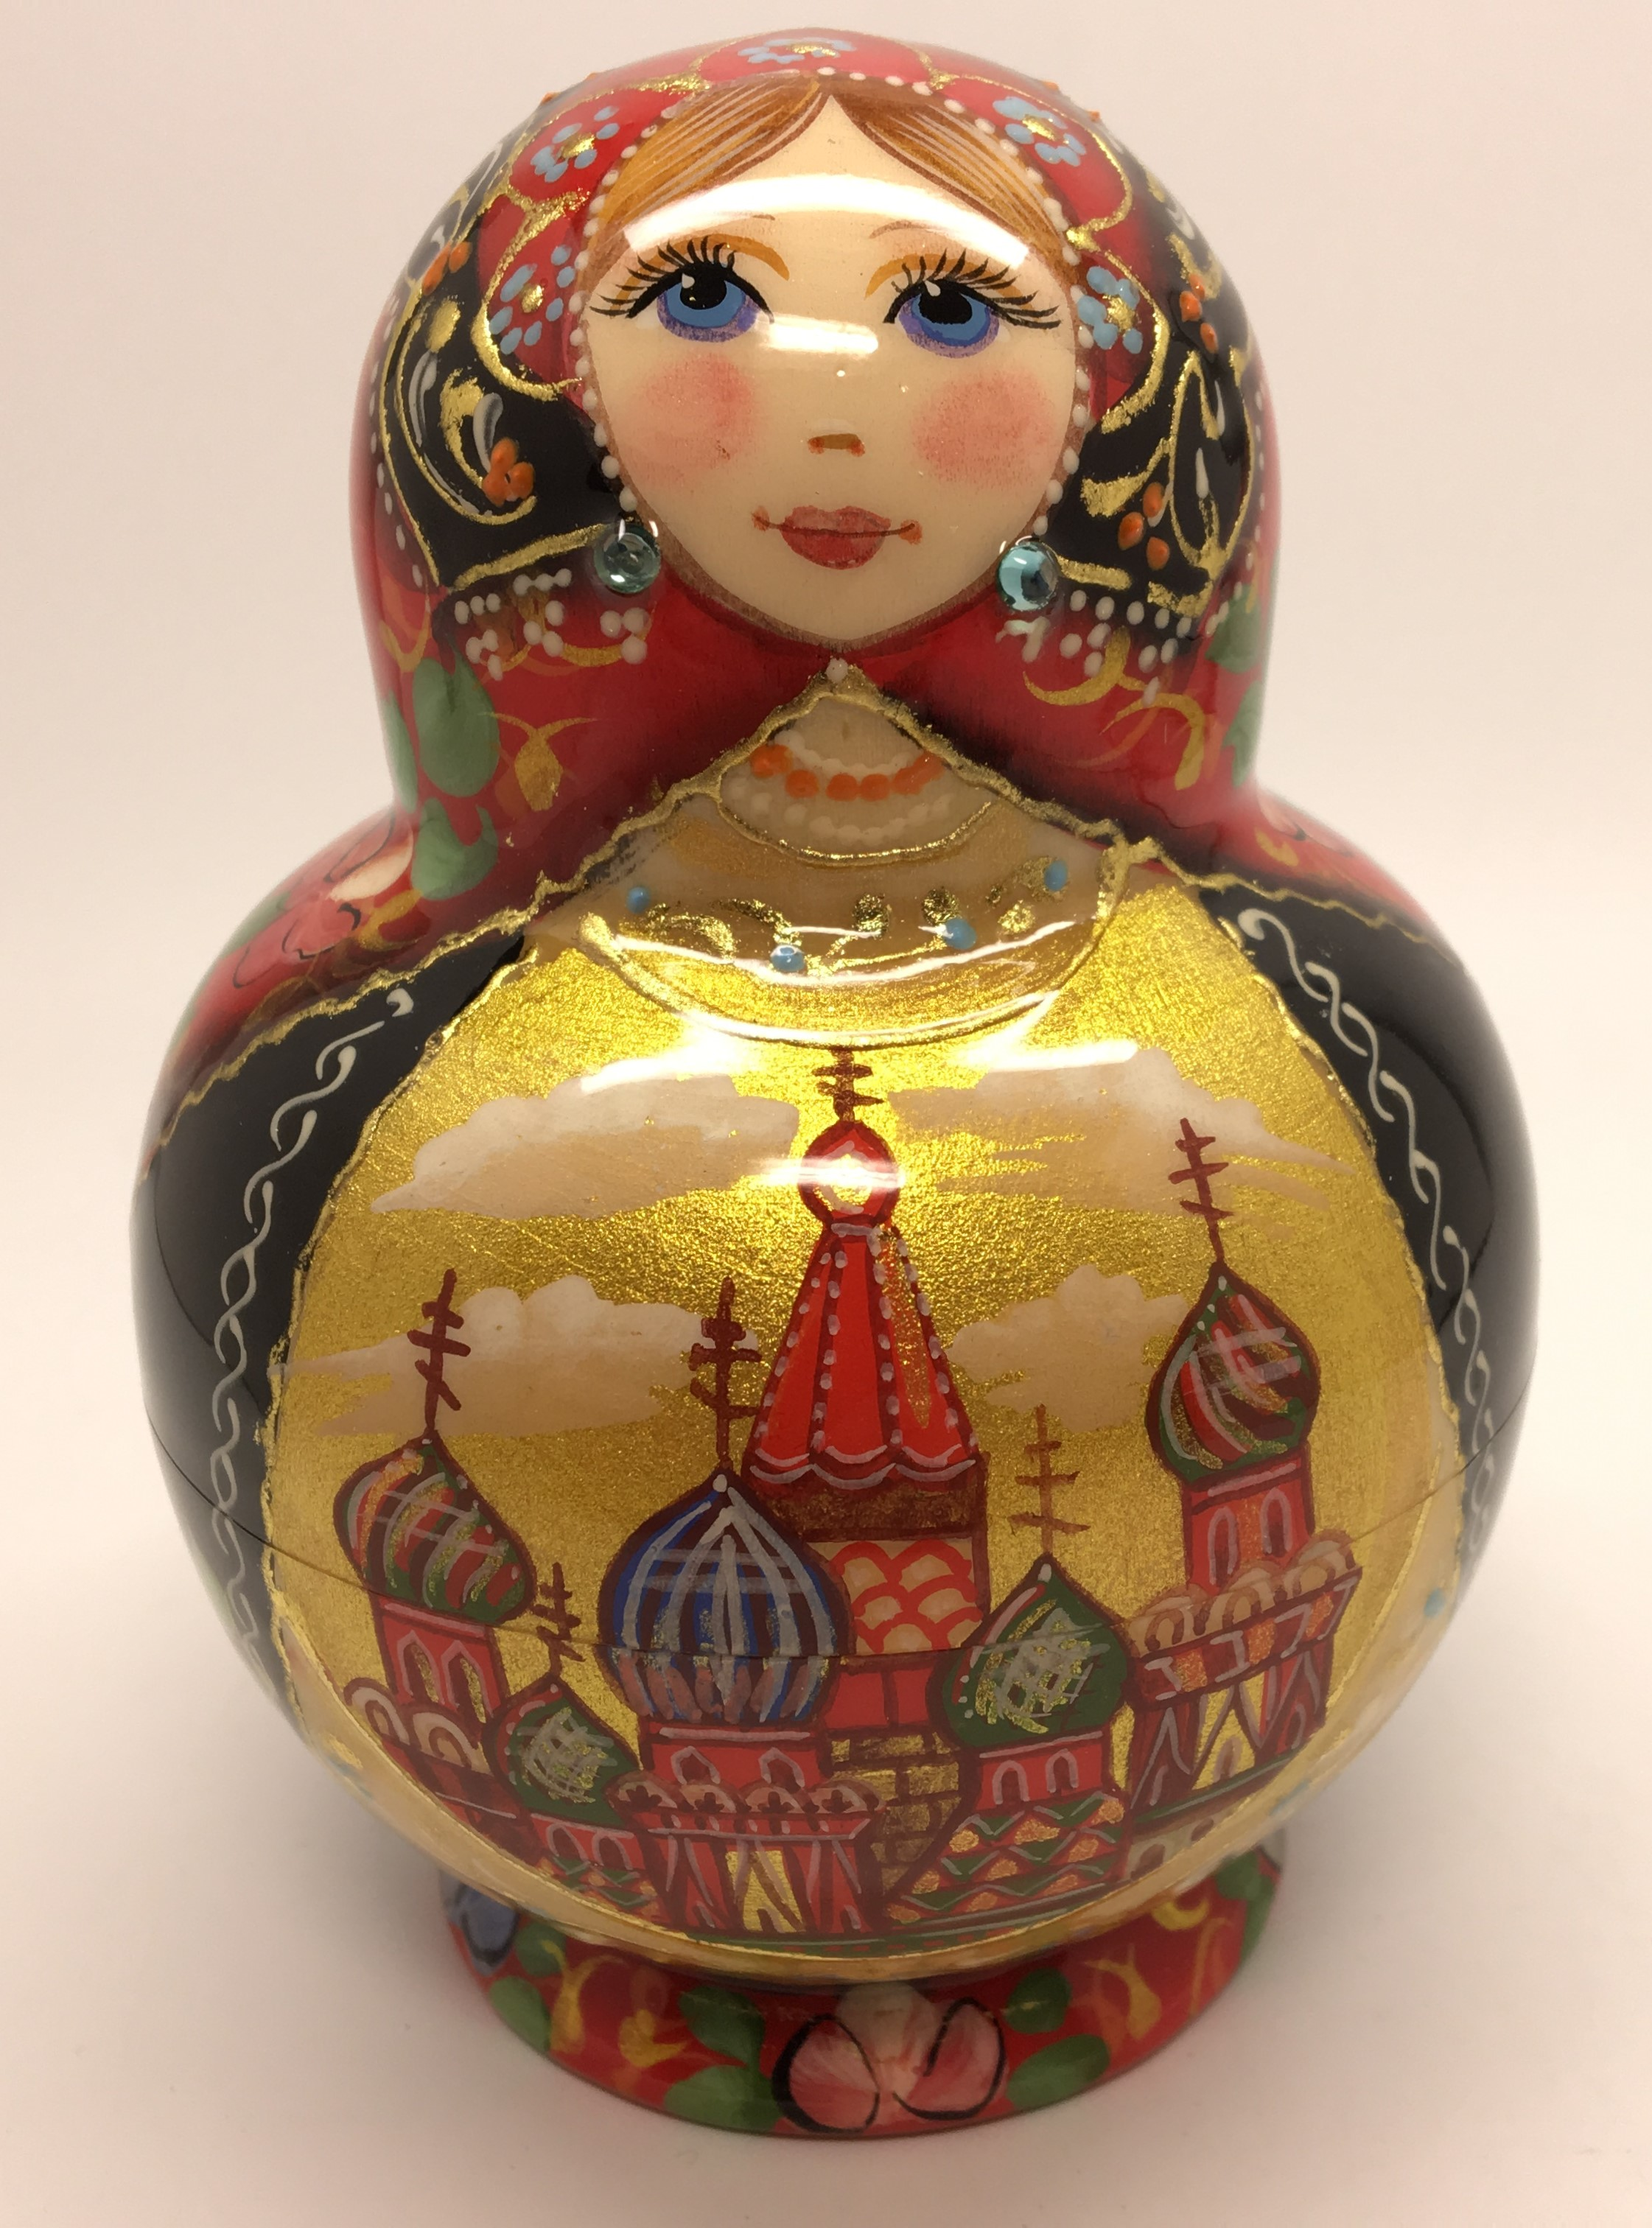 110 mm Moscow Cathedrals round shape hand painted wooden Russian Matryoshka doll (by A Studio)